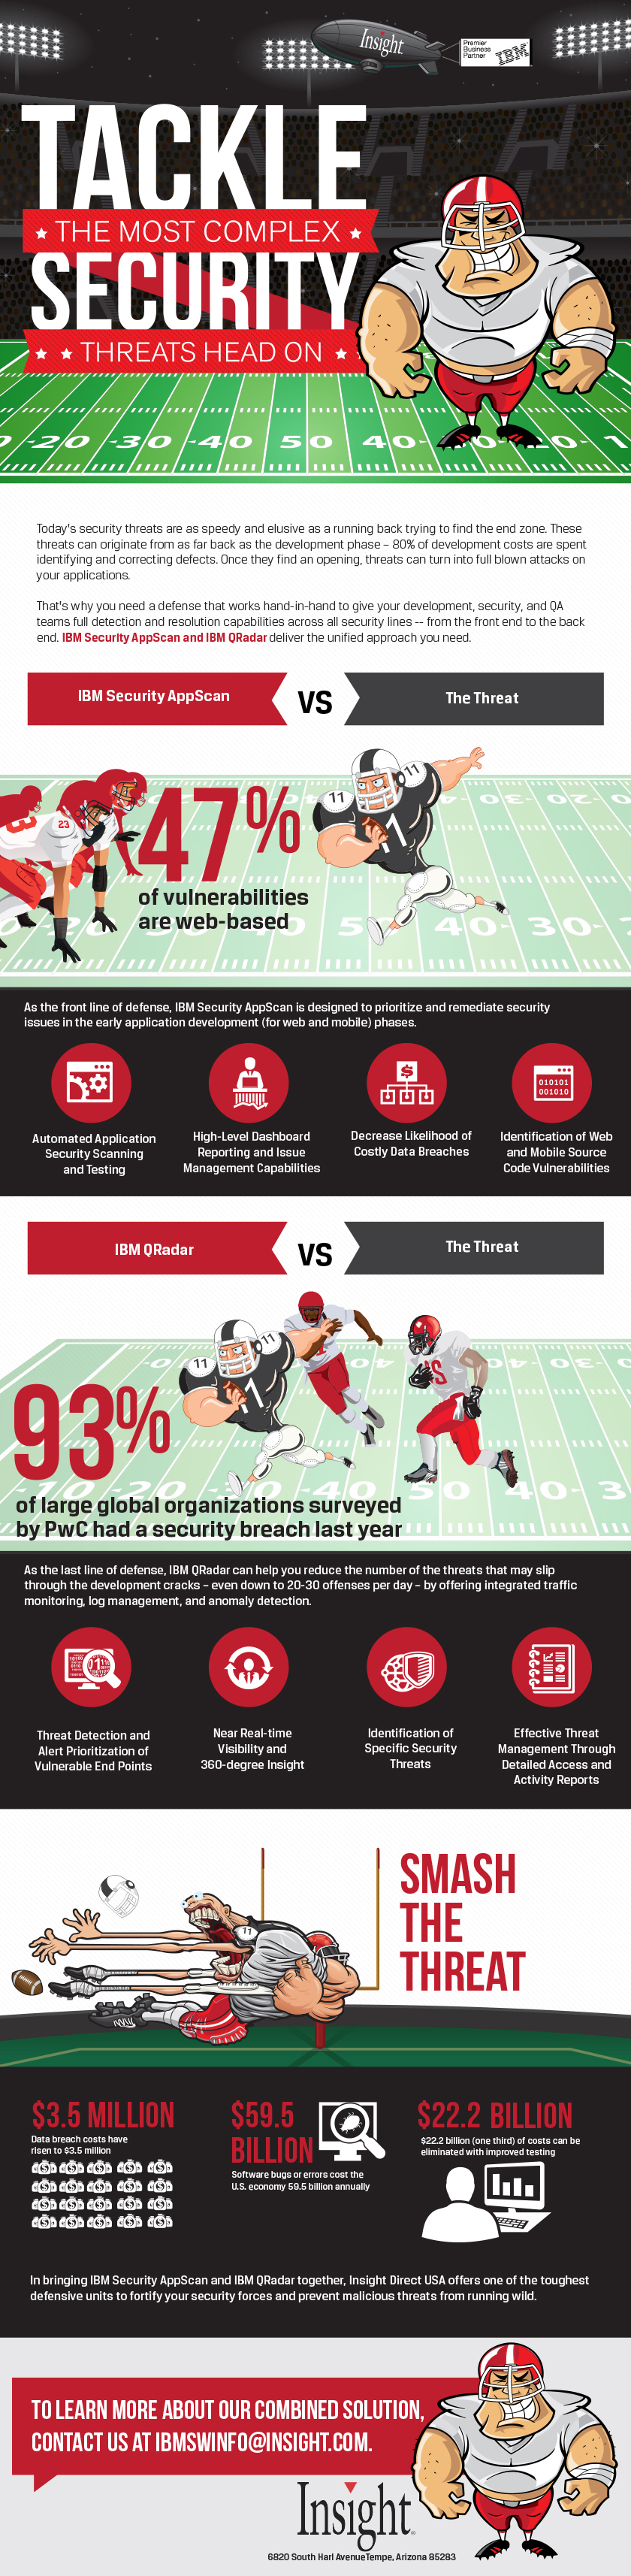 IBM: Tackle the Most Complex Security Threats Head On